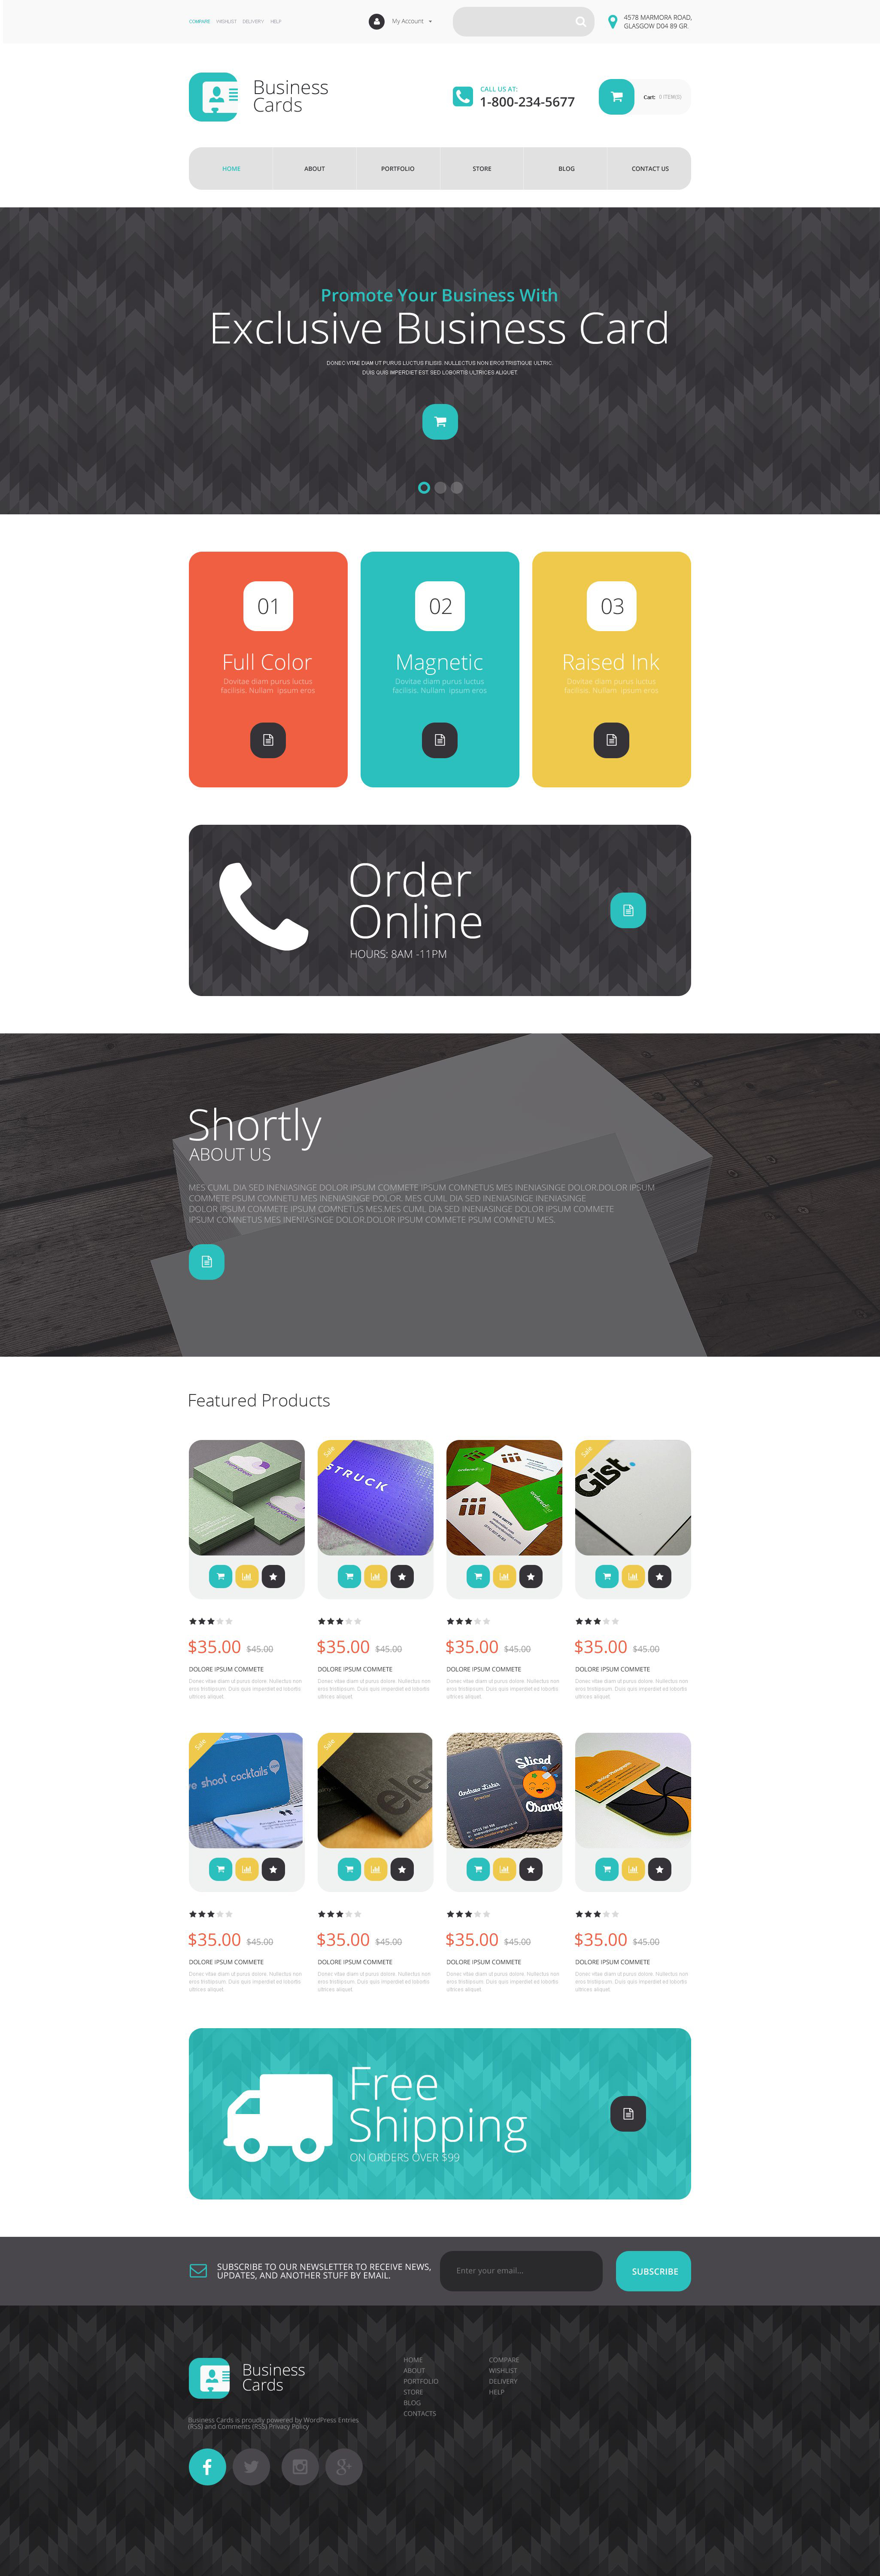 The Business Special Cards WooCommerce Design 53887, one of the best WooCommerce themes of its kind (transportation, most popular), also known as business special cards WooCommerce template, services WooCommerce template, products WooCommerce template, shopping cart WooCommerce template, style WooCommerce template, prices and related with business special cards, services, products, shopping cart, style, prices, etc.